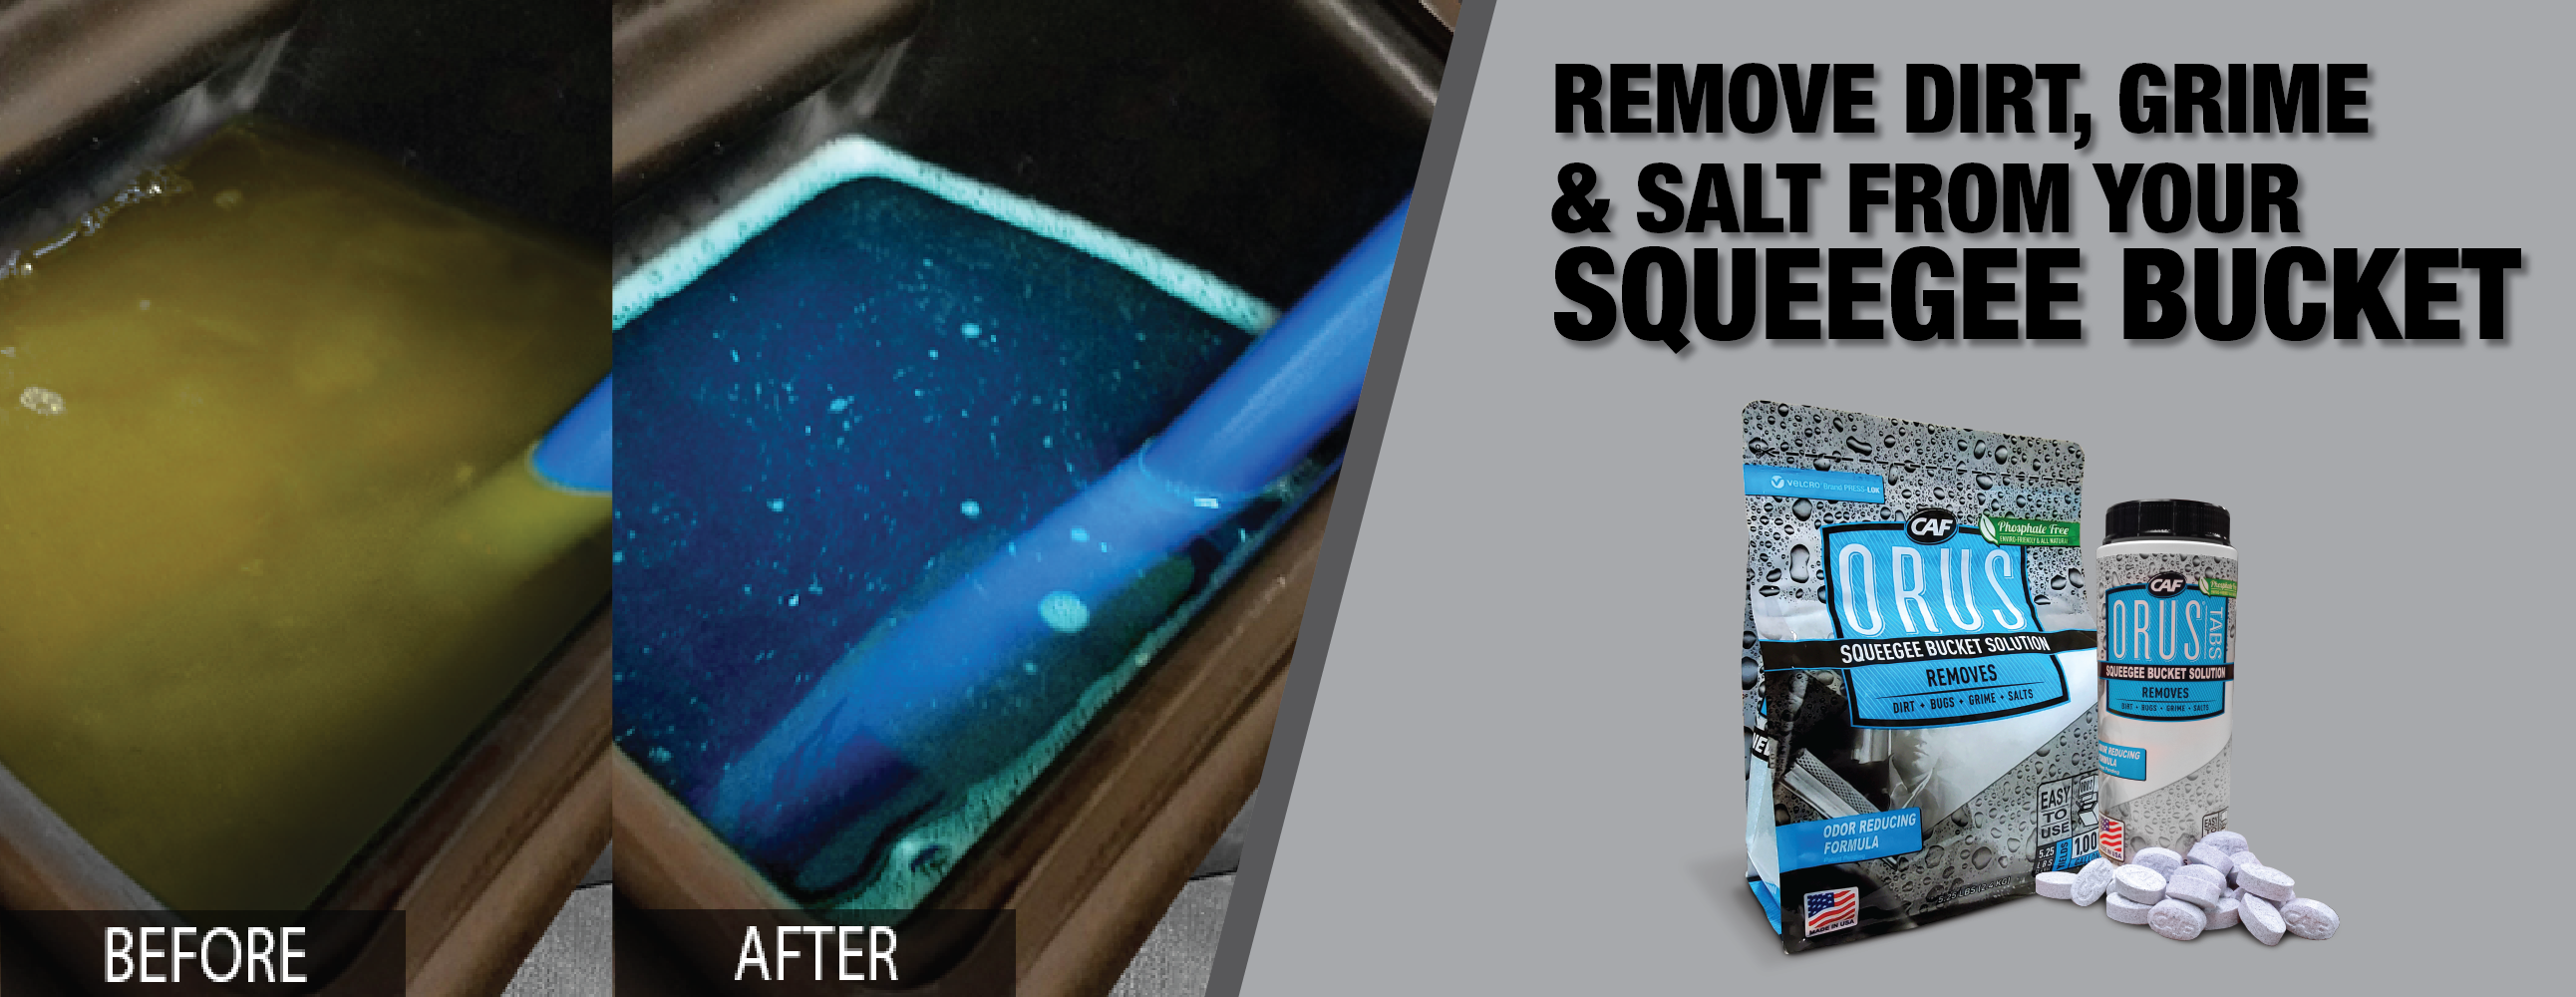 How to Clean Squeegee Buckets